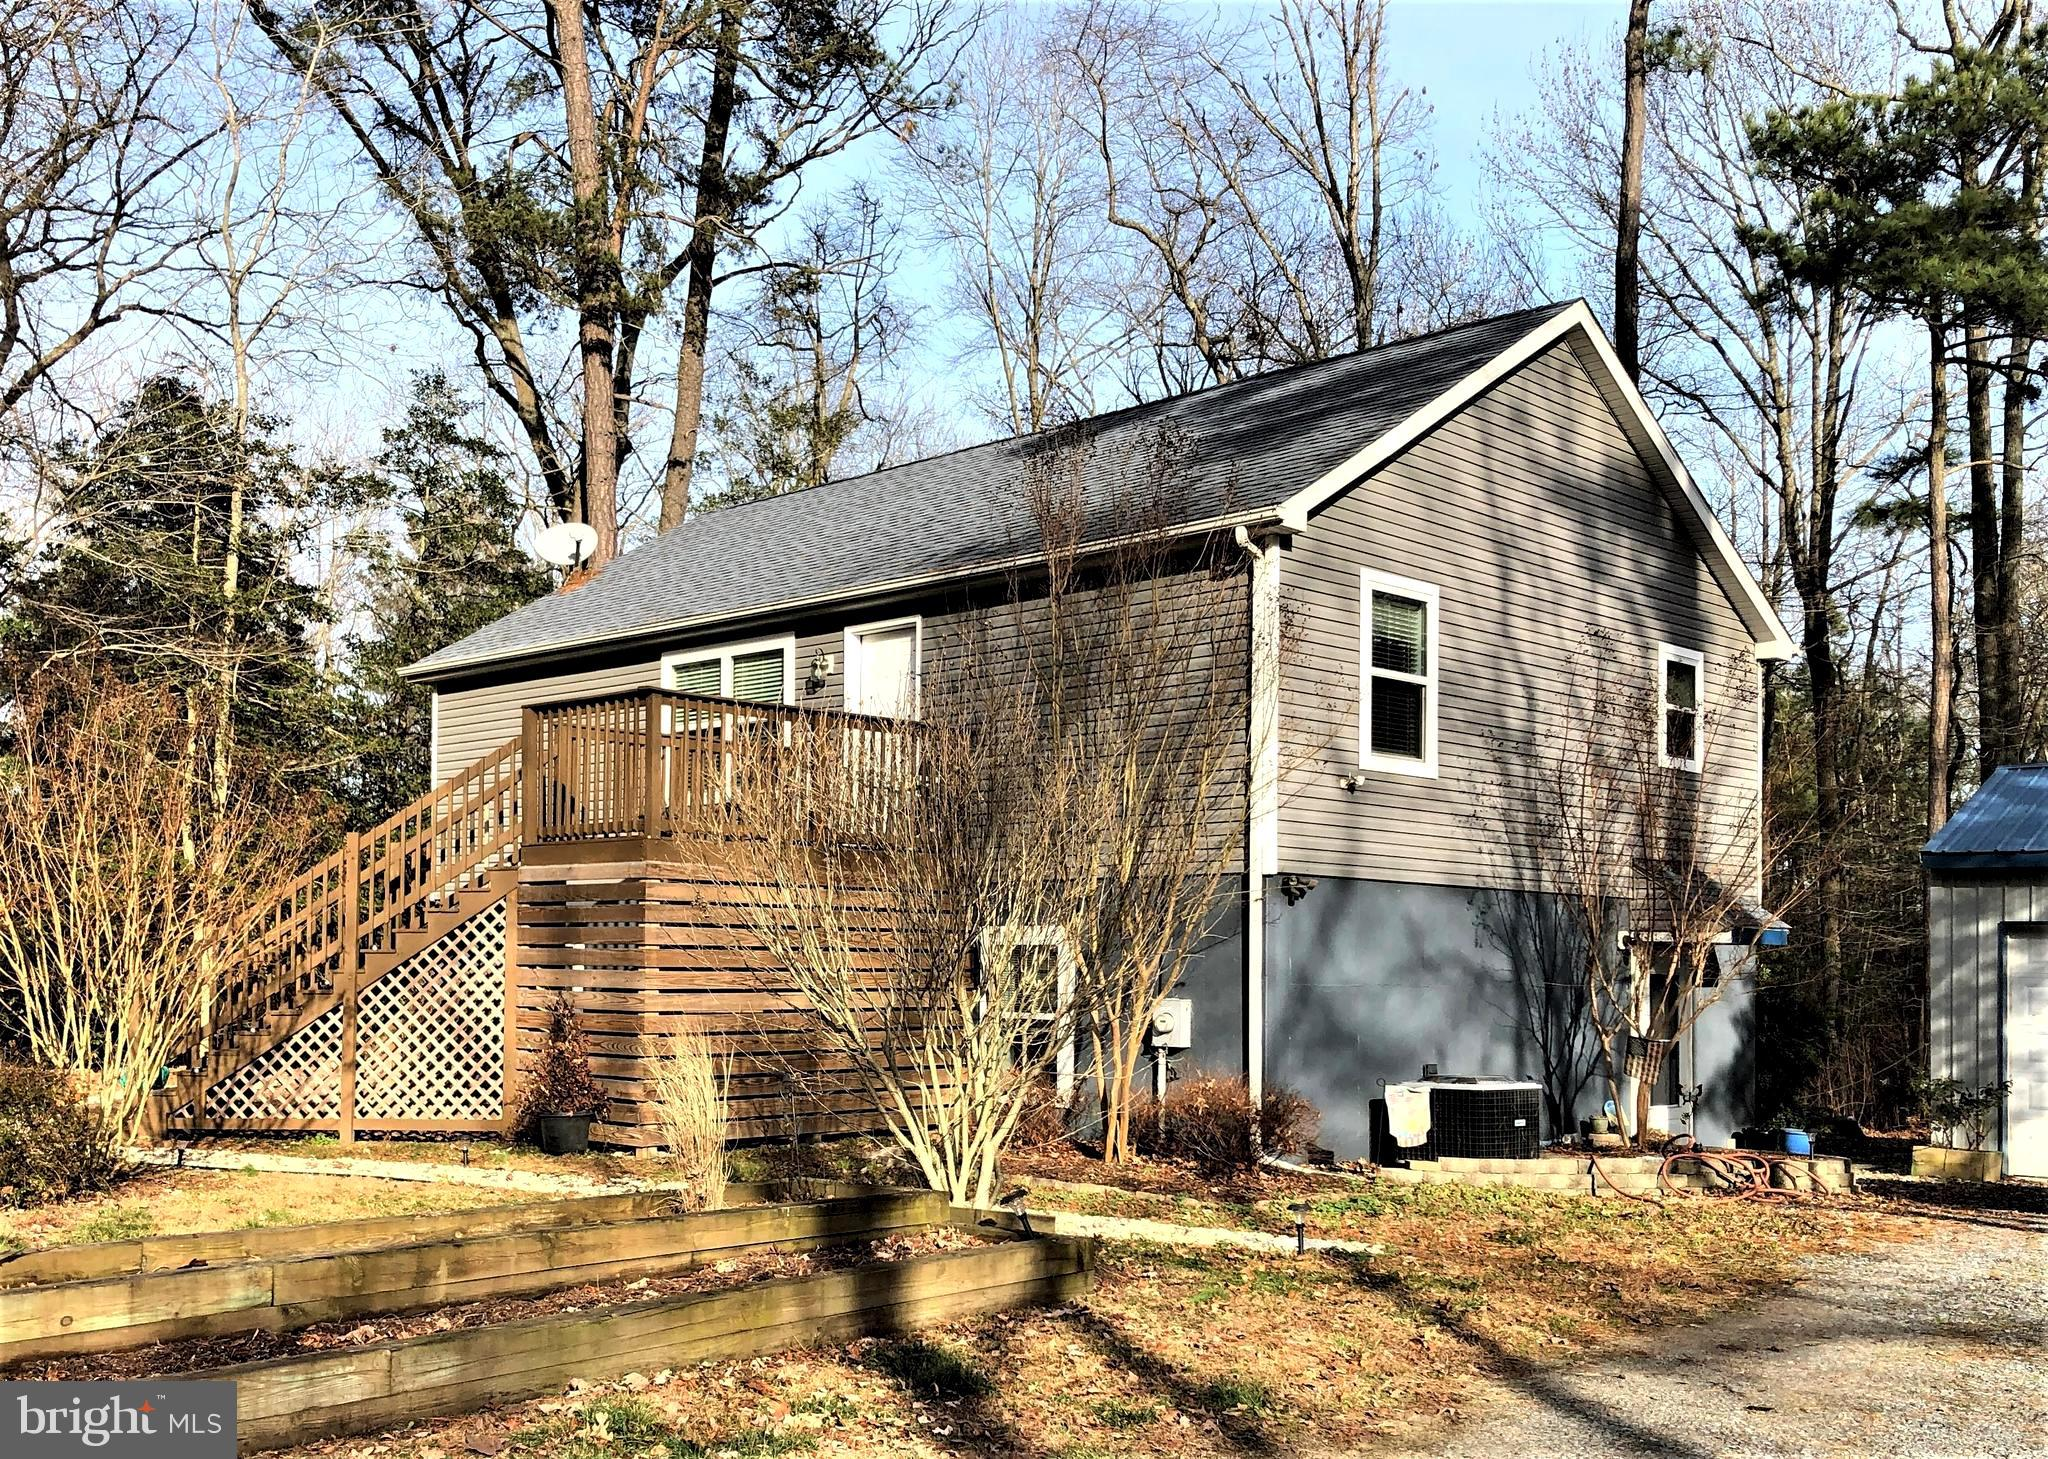 """Do you say, """"I want a home with no homeowner's association!""""   Do you say, """"I want privacy!!""""   Do you say, I want to be close to the beach!!!""""  Okay, then... here's your opportunity!  This three-bedroom, three-bath two-story Raised Rancher has the possibility of splitting up the first and second floors  (with some modifications) to make an upstairs/downstairs duplex out of this home.  Located just 7 miles to Lewes Beach, and only 5 miles to Rt. 1 via Rt. 24, this property is situated on .64 acres and is perfectly located to be """"close, yet far enough away from the beach""""!  You are able to keep your property as natural or as manicured as you'd like because there is NO HOA to tell you what to do!!   And the front second-story deck and the rear balcony afford views of wildlife that will amaze and delight you.  With spacious rooms throughout, this home was built with extra insulation on purpose.  Stainless-Steel Appliances complete the kitchen upgrade done in 2018.  A large utility closet downstairs for the systems of the home (HWH new in 2019) and lots of storage.  This house offers so much to the right buyer... is it you?  Book your appointment today to check and see."""